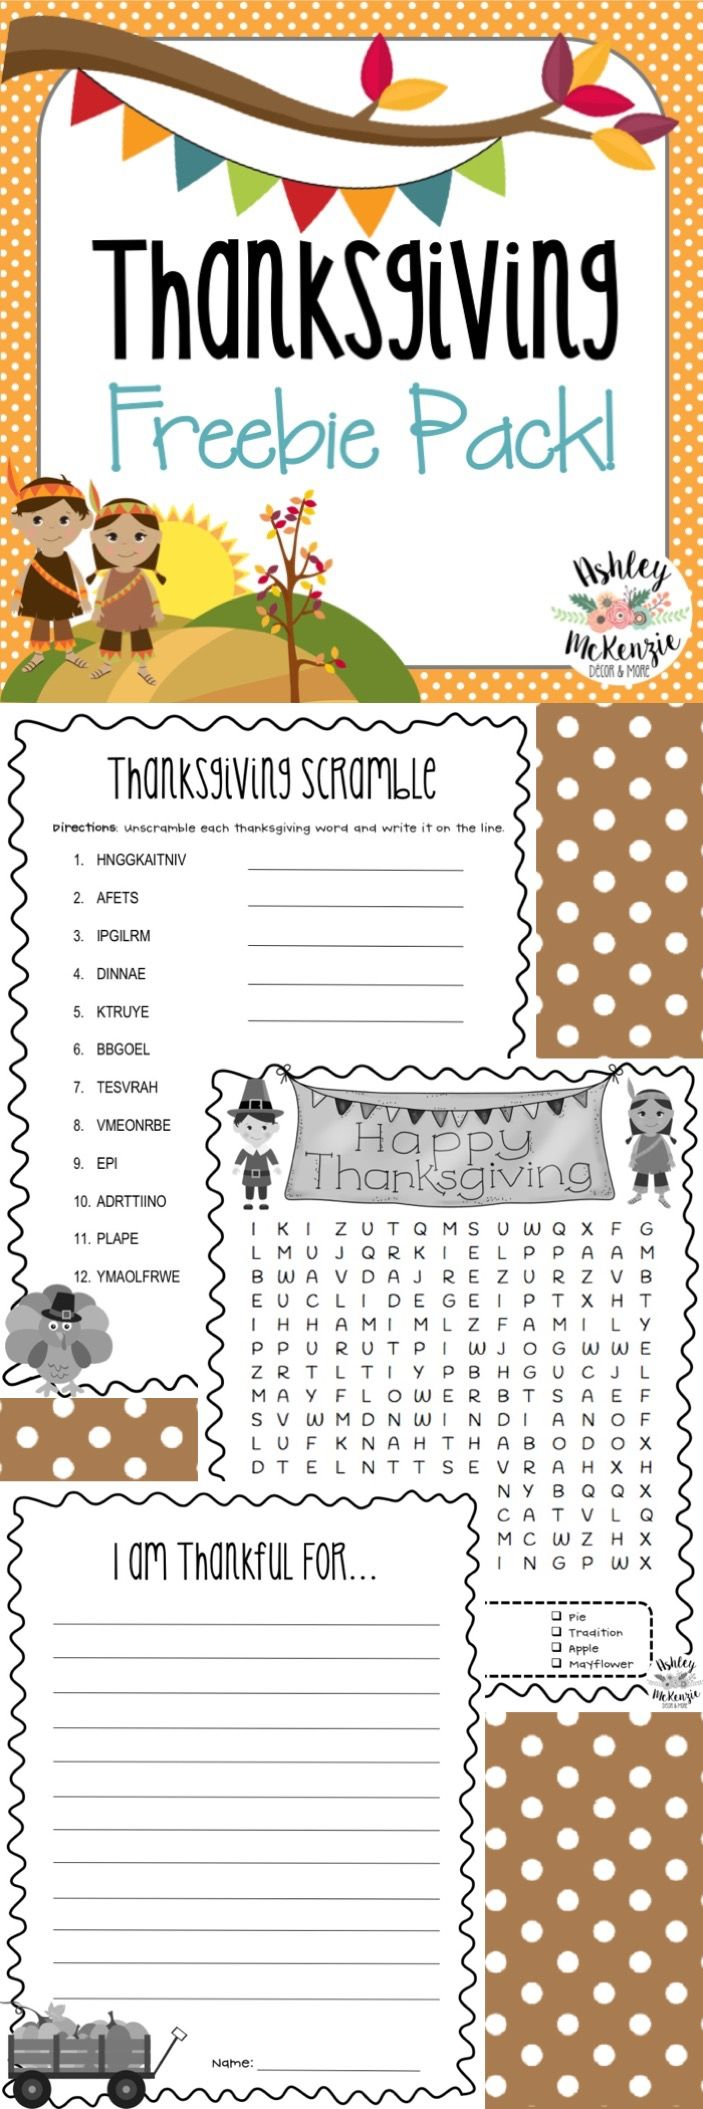 Thanksgiving Activities Freebie! Wordsearch, Word Scramble, & Writing Prompt!